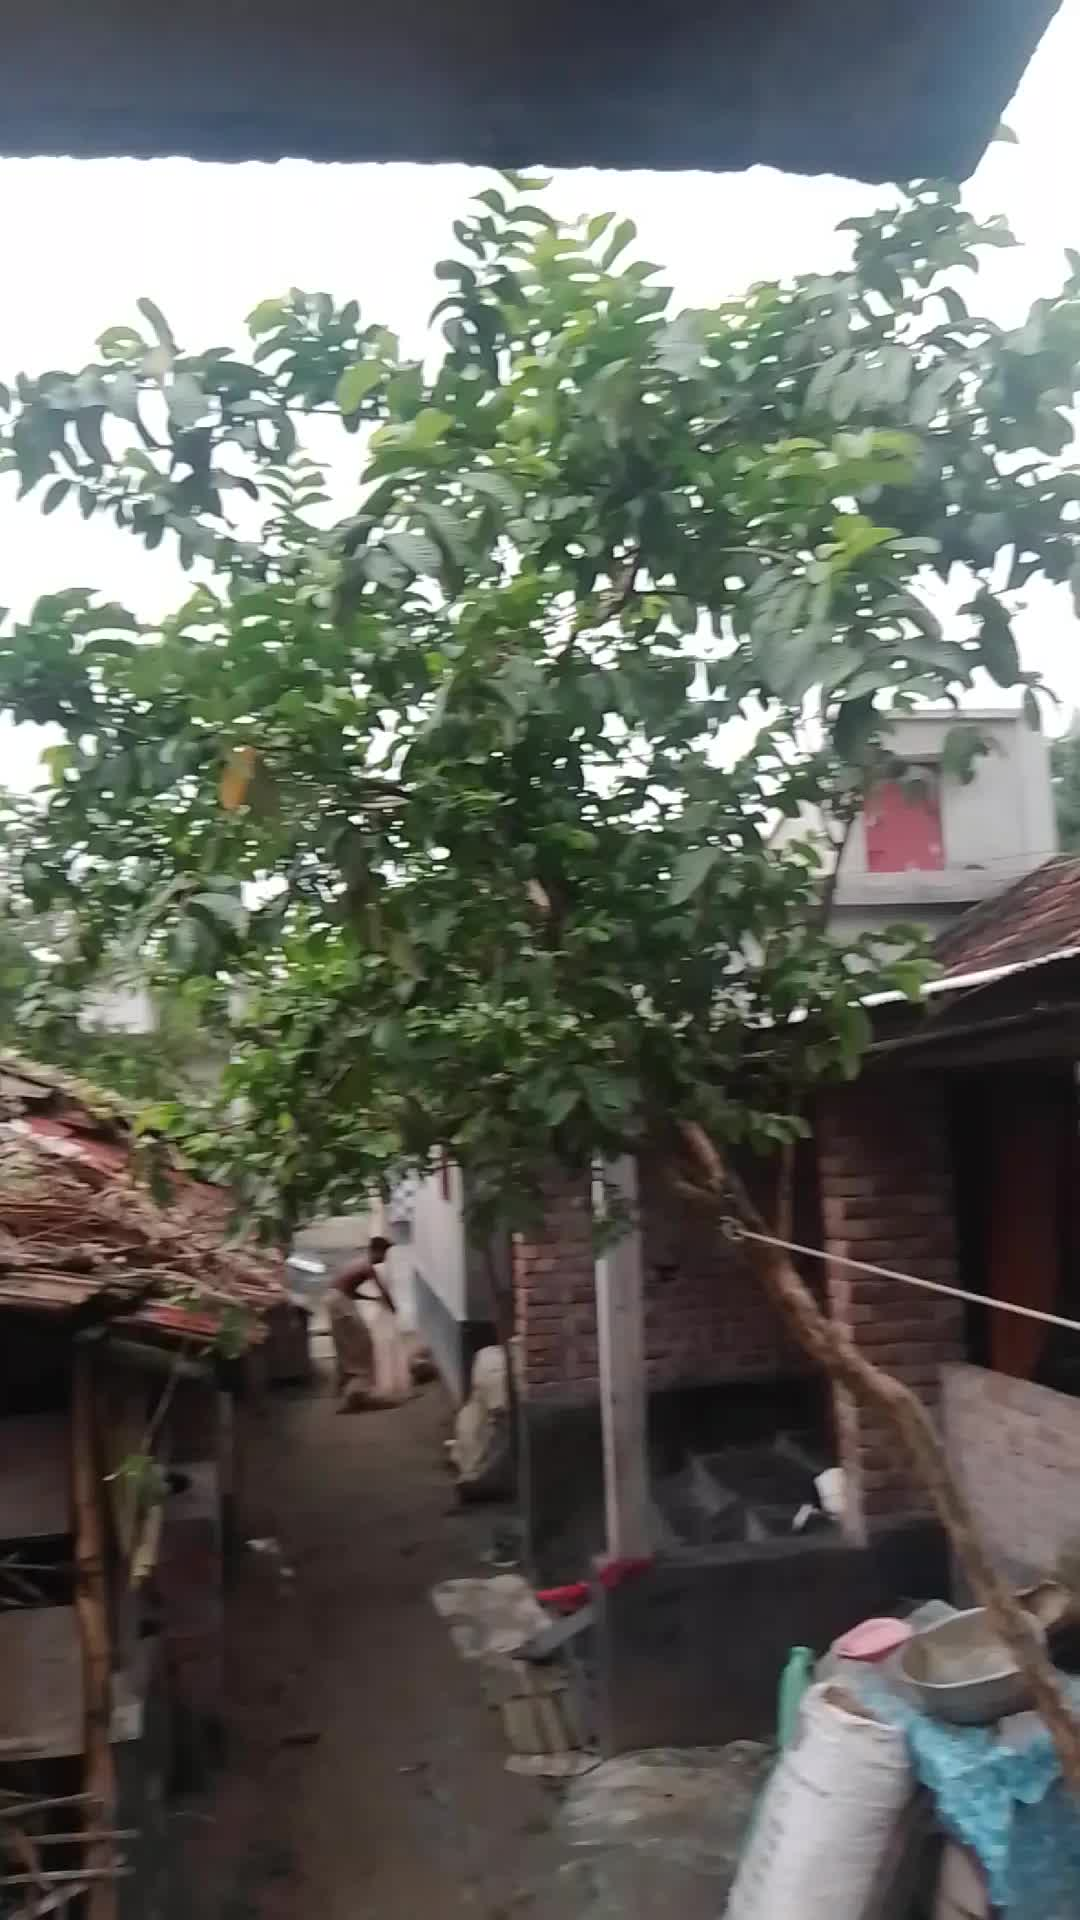 In the video above you can see that there is a lot of wind and the leaves of the plants are moving a lot in this wind.